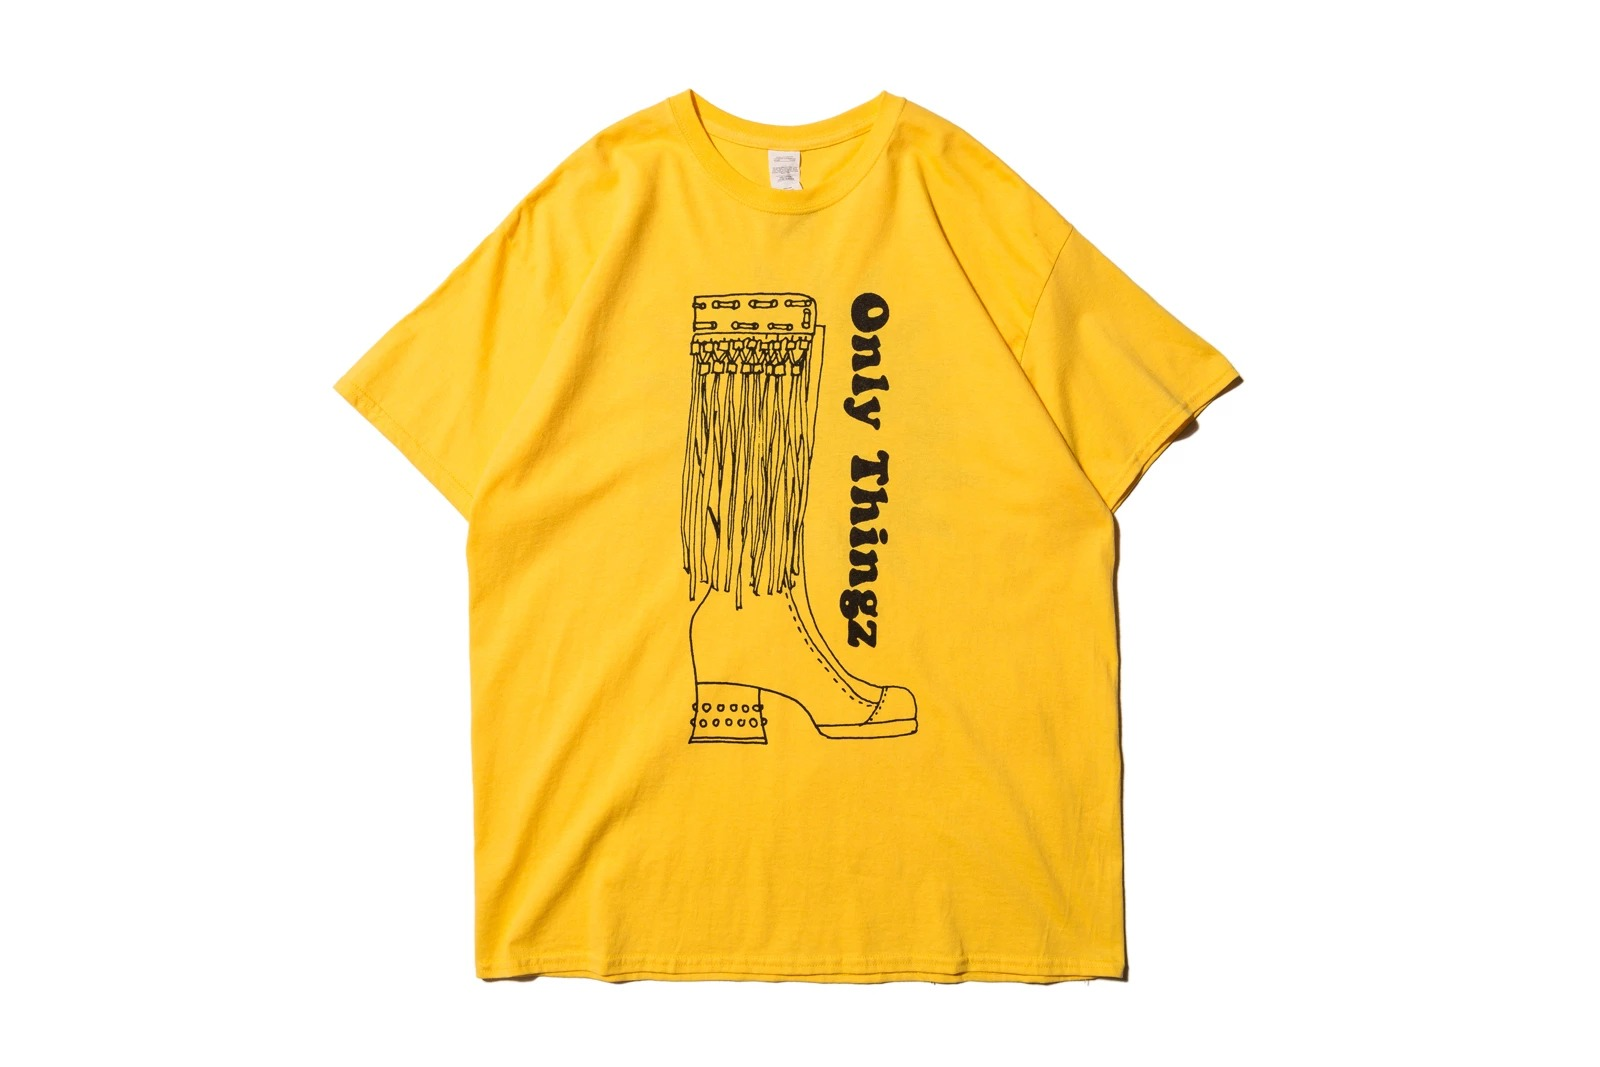 good-morning-tapes-only-thingz-tee_p2